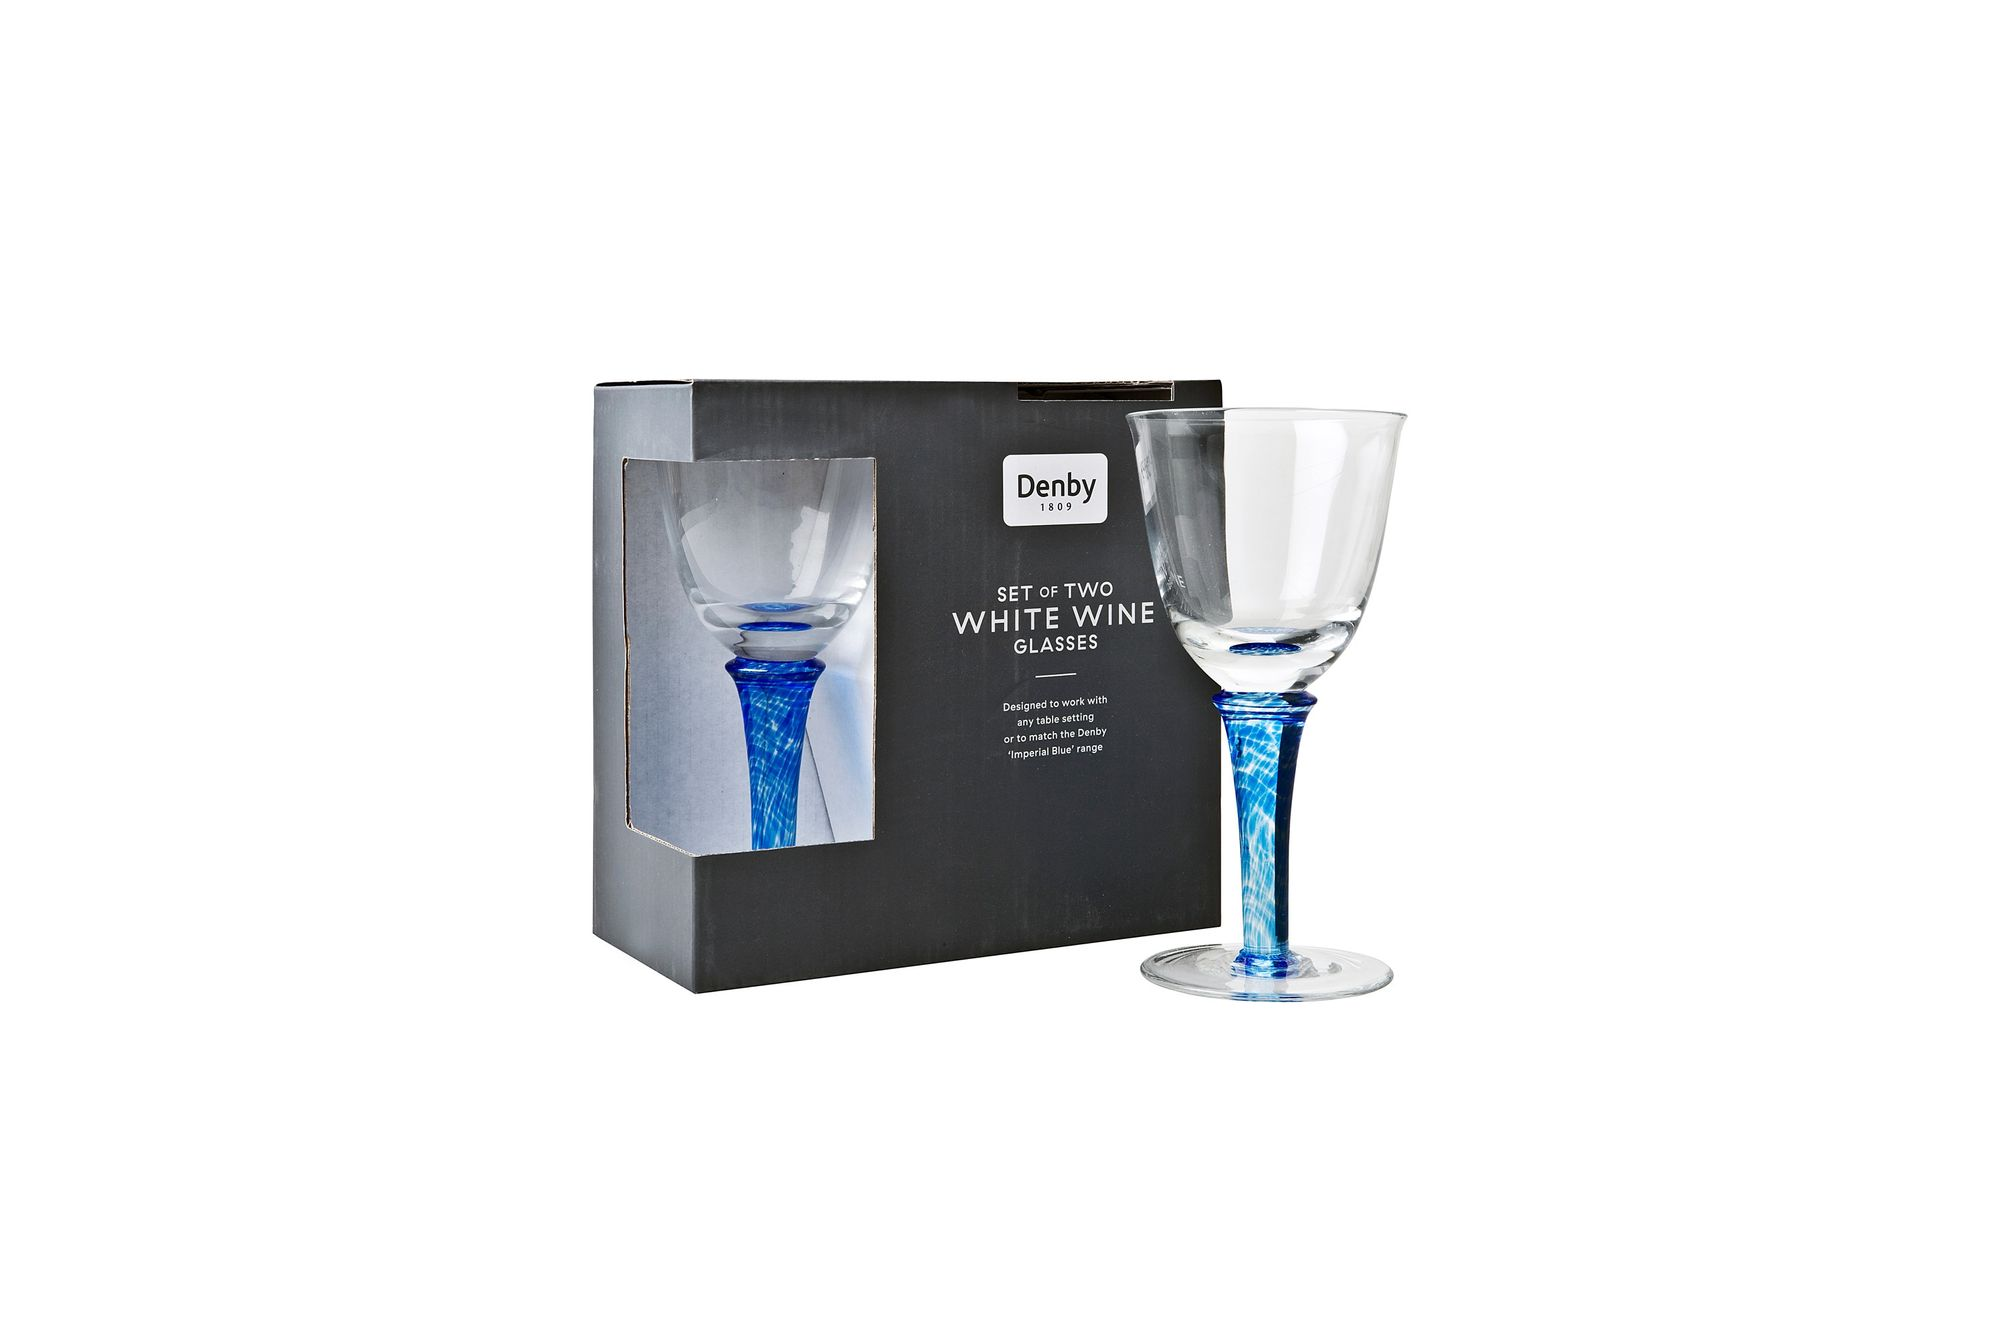 Denby Imperial Blue Pair of White Wine Glasses thumb 2